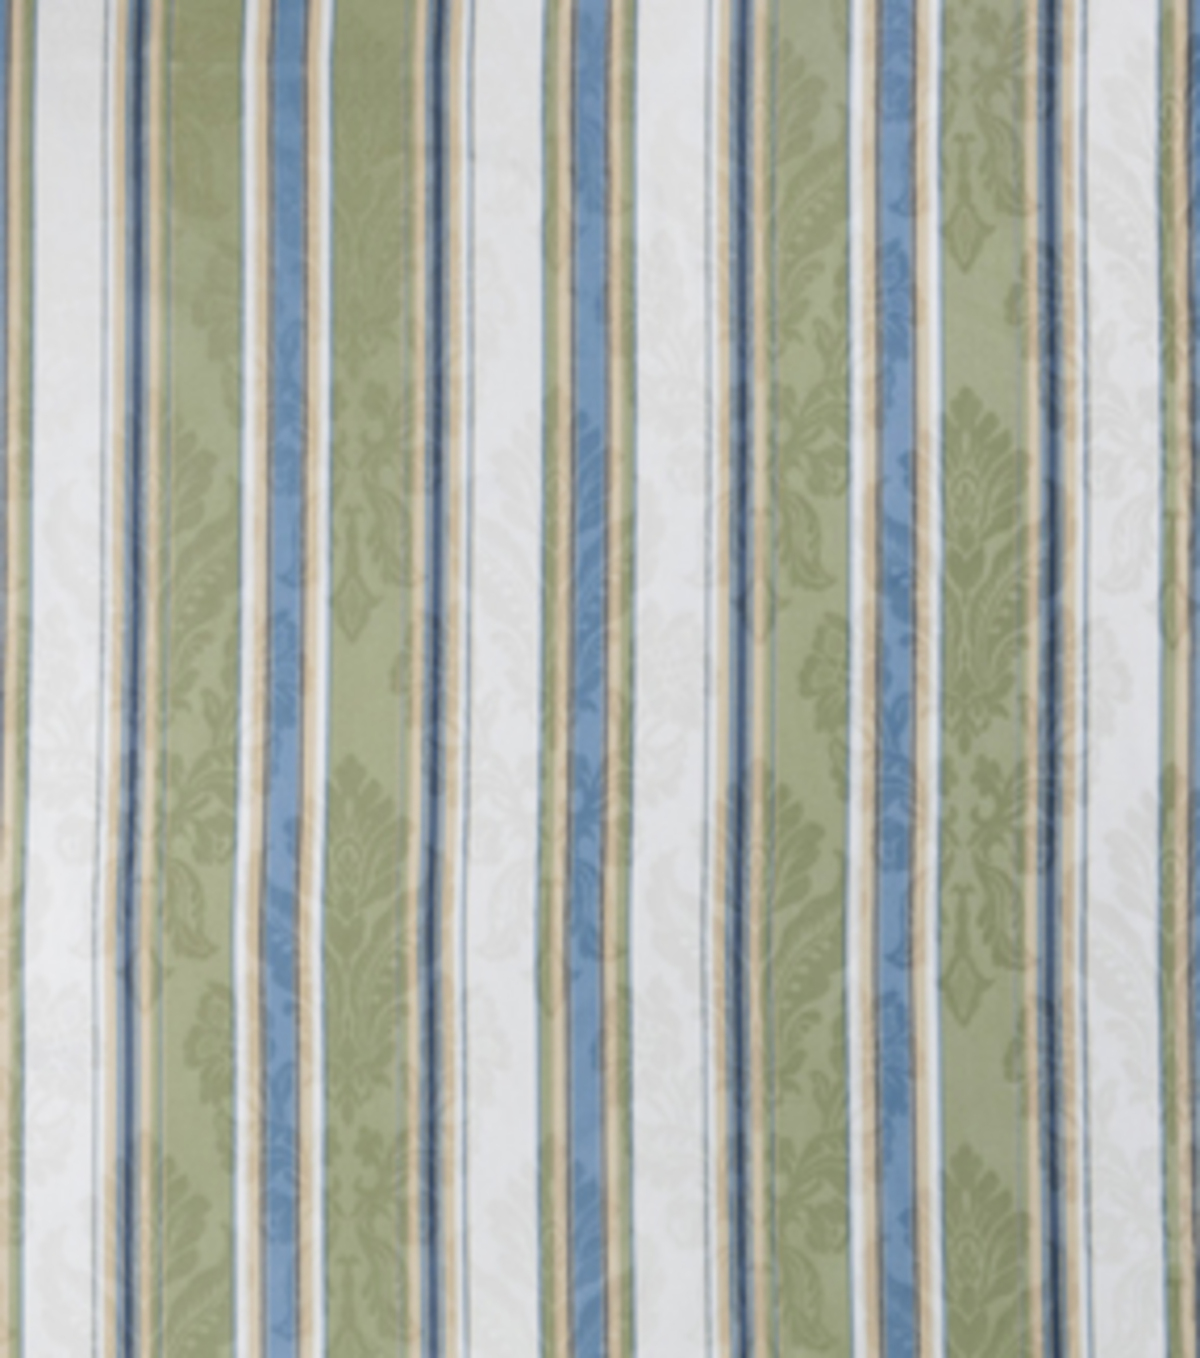 Home Decor 8\u0022x8\u0022 Fabric Swatch-SMC Designs County / Bone